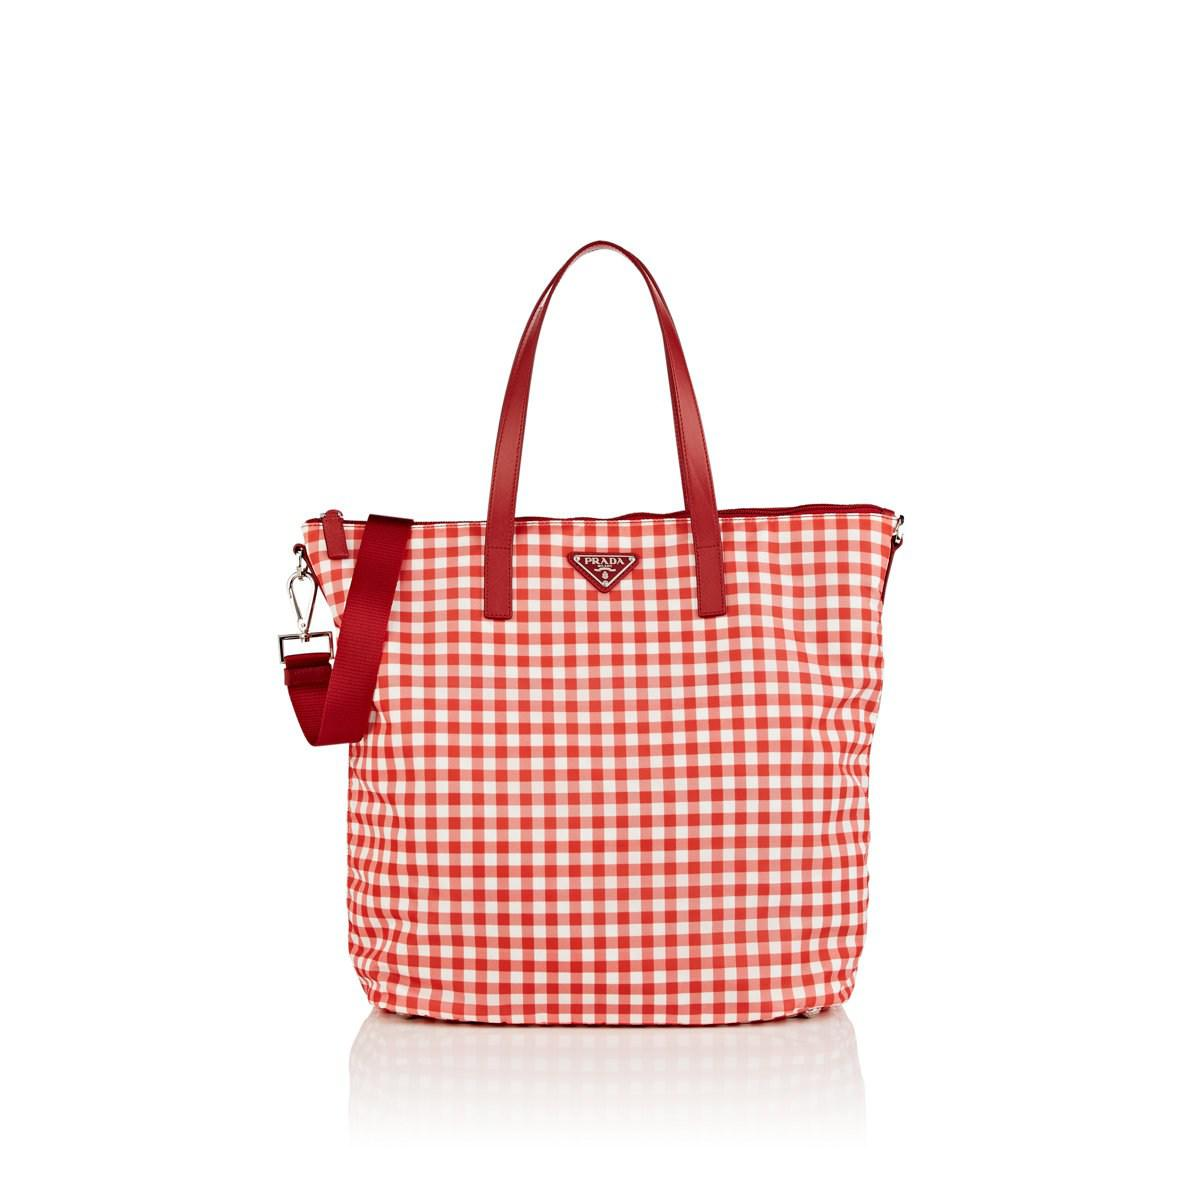 f8a297ca6d30 ... sweden lyst prada donna lady shopping tote bag in red 27636 ac0bc